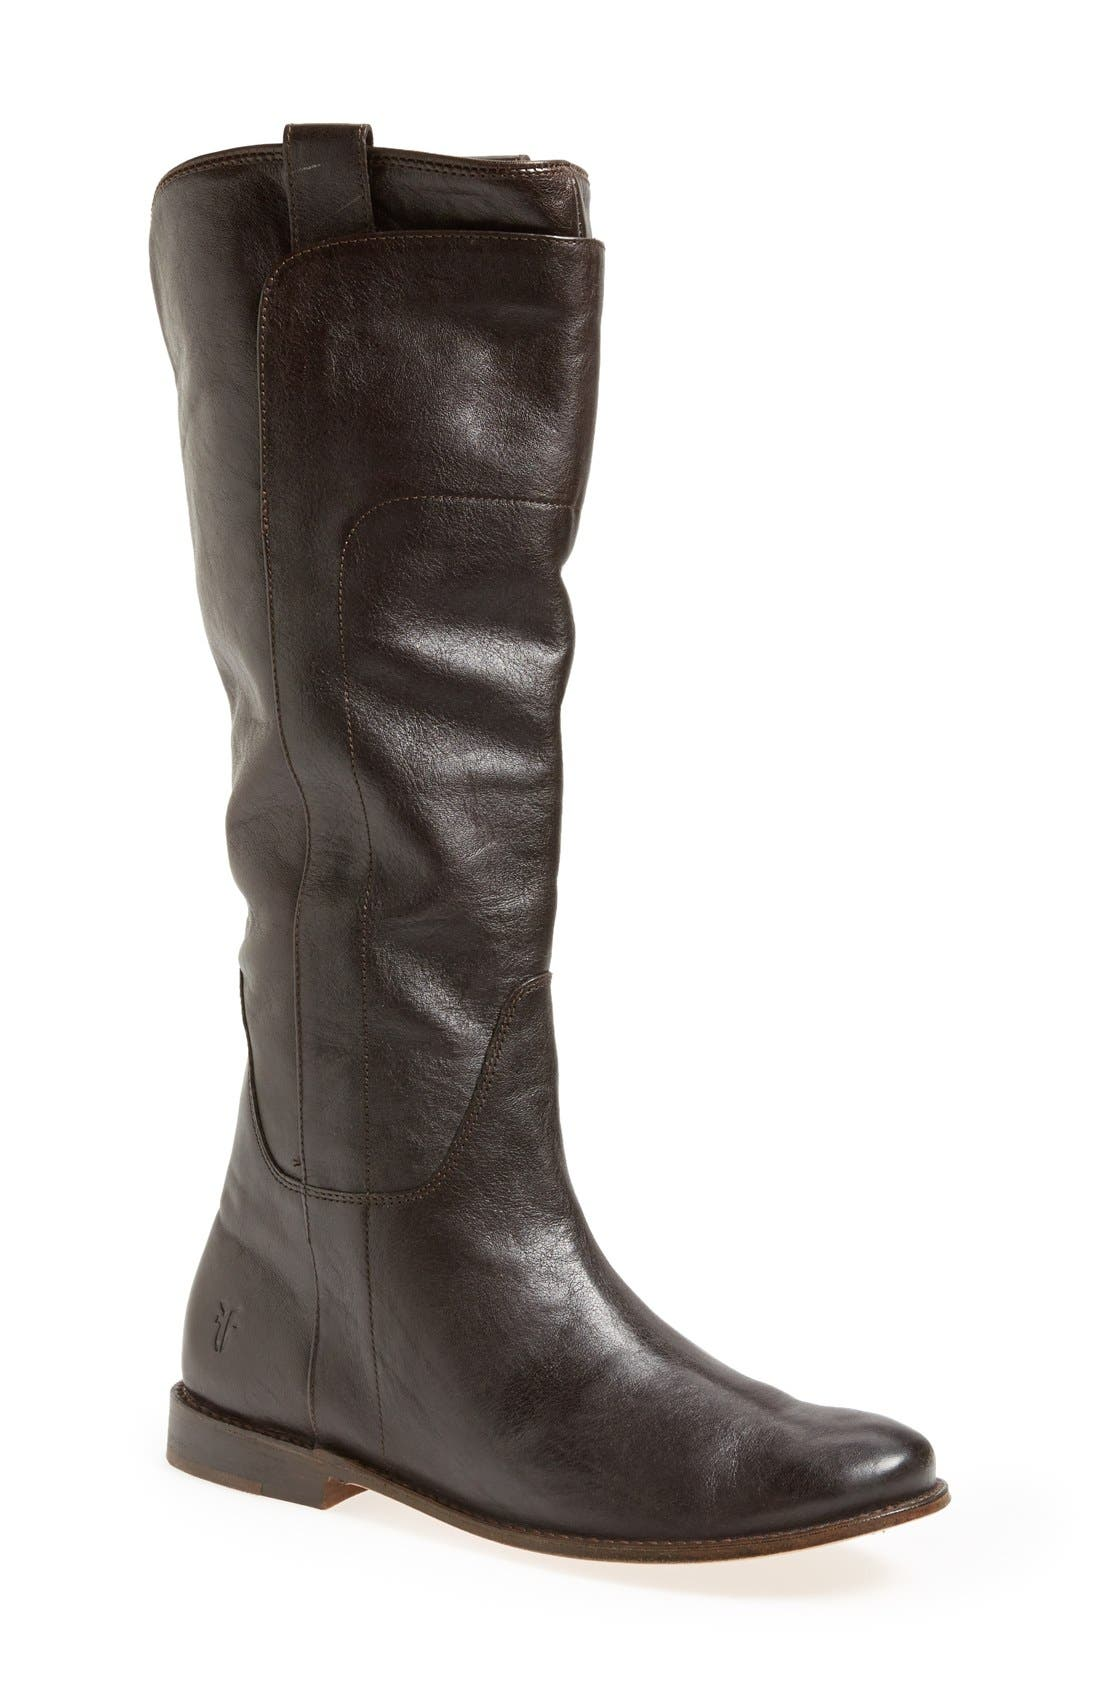 Alternate Image 1 Selected - Frye 'Paige' Tall Riding Boot